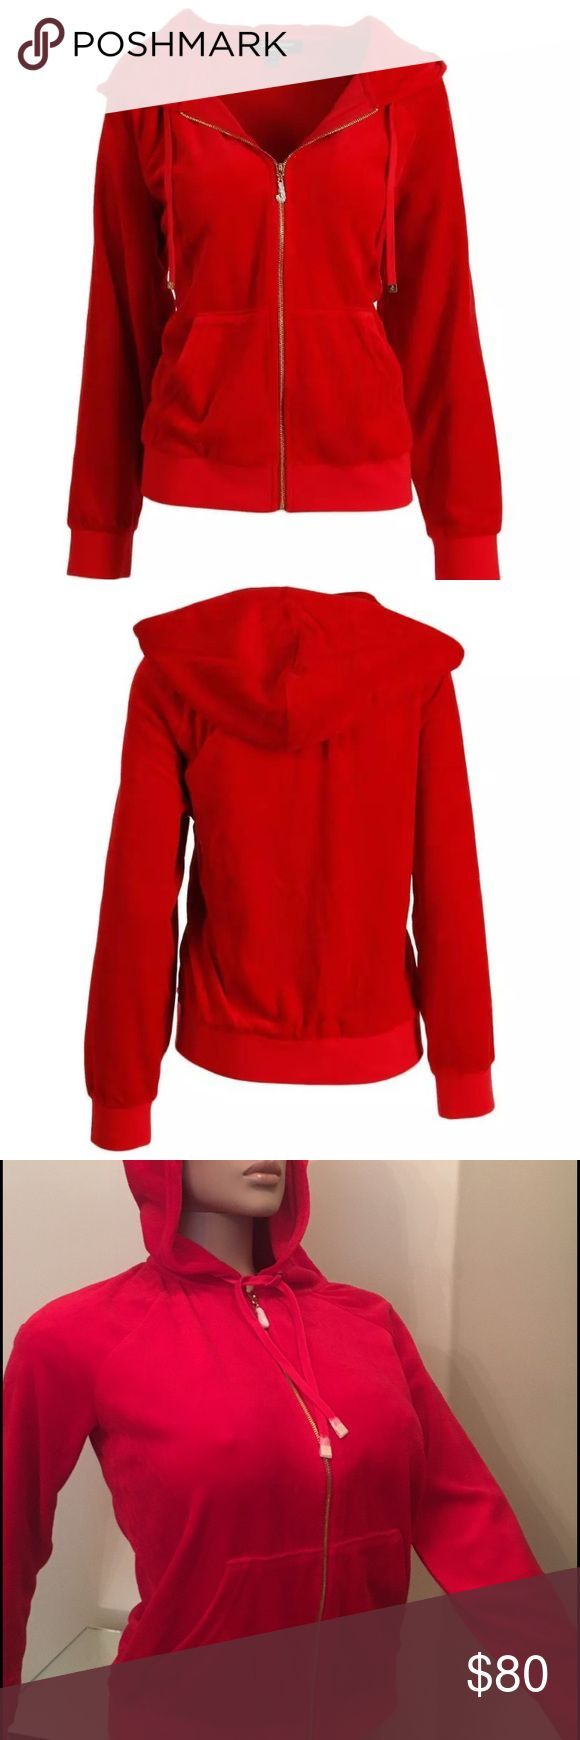 """Juicy Couture Women's Red plush Velour Hoodie SM Juicy Couture Black Label Women's Red plush Velour Relaxed Hoodie S  Juicy Couture is an American contemporary casual wear and dress clothing brand based out of California.  Color: Astor Retail: $158.00, New with tags Material: 78% Cotton/22% Polyester Style Number: WTKT25269, sales final on PM. Know your size. Retail plastic! Tags, measurements laying flat across; shoulder to shoulder 18"""", armpit to armpit (bust) 19"""", length (top to bottom)…"""